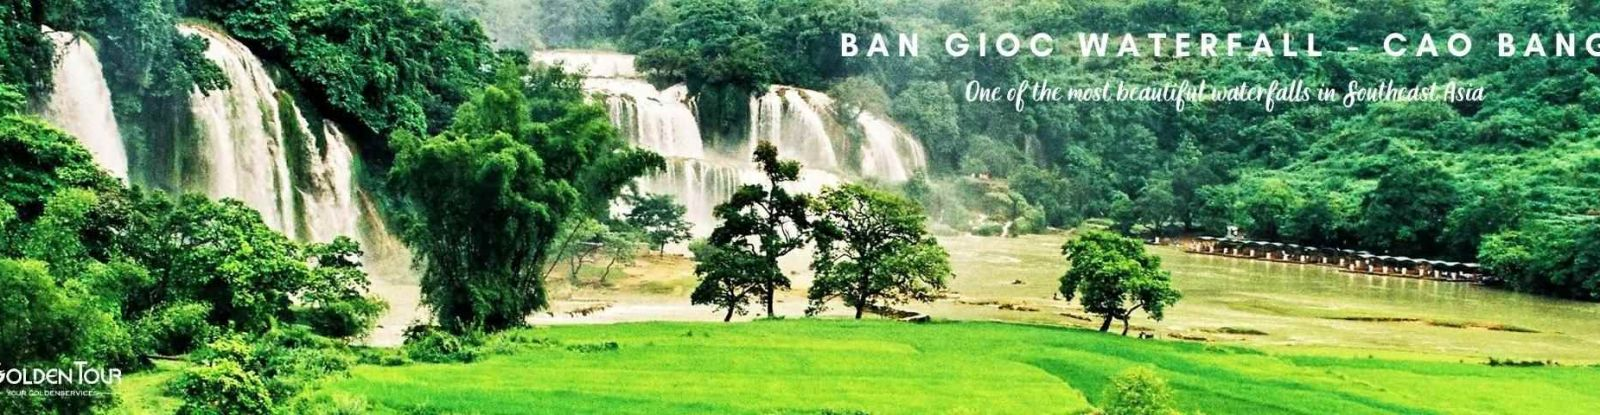 Destinations in Cao Bang - Ban Gioc Waterfall